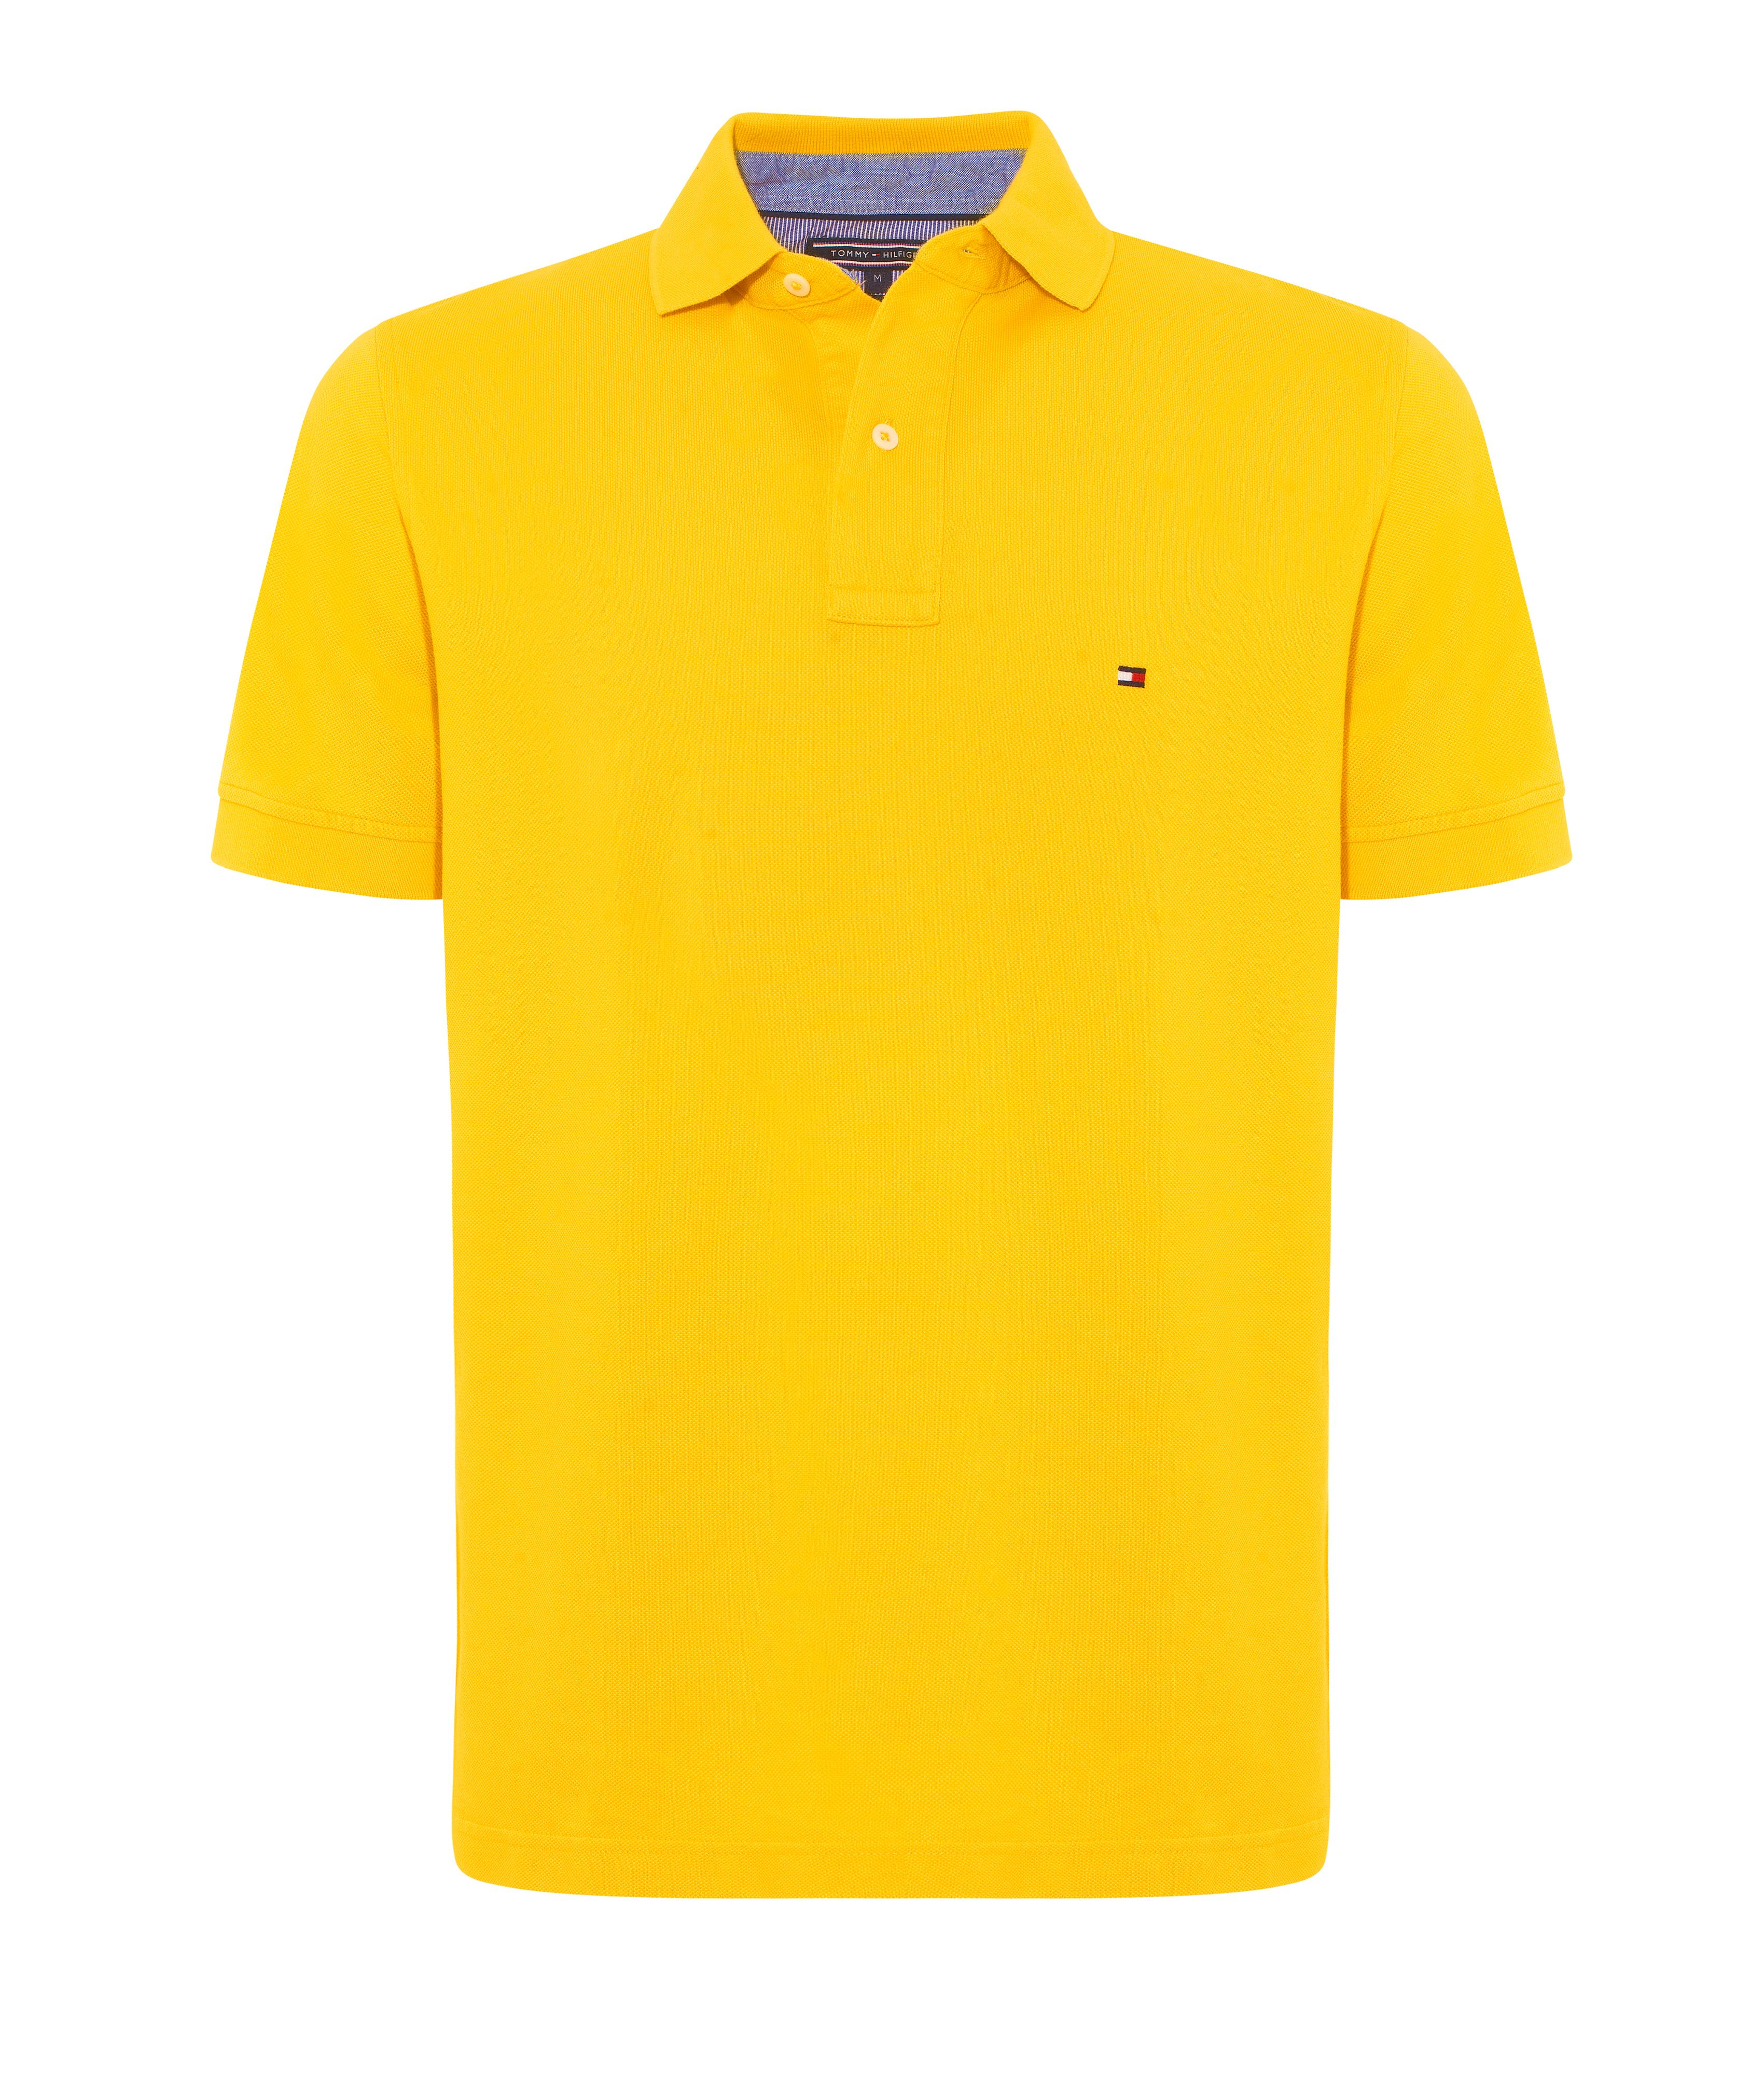 tommy hilfiger tommy plain regular fit polo shirt in yellow for men lyst. Black Bedroom Furniture Sets. Home Design Ideas